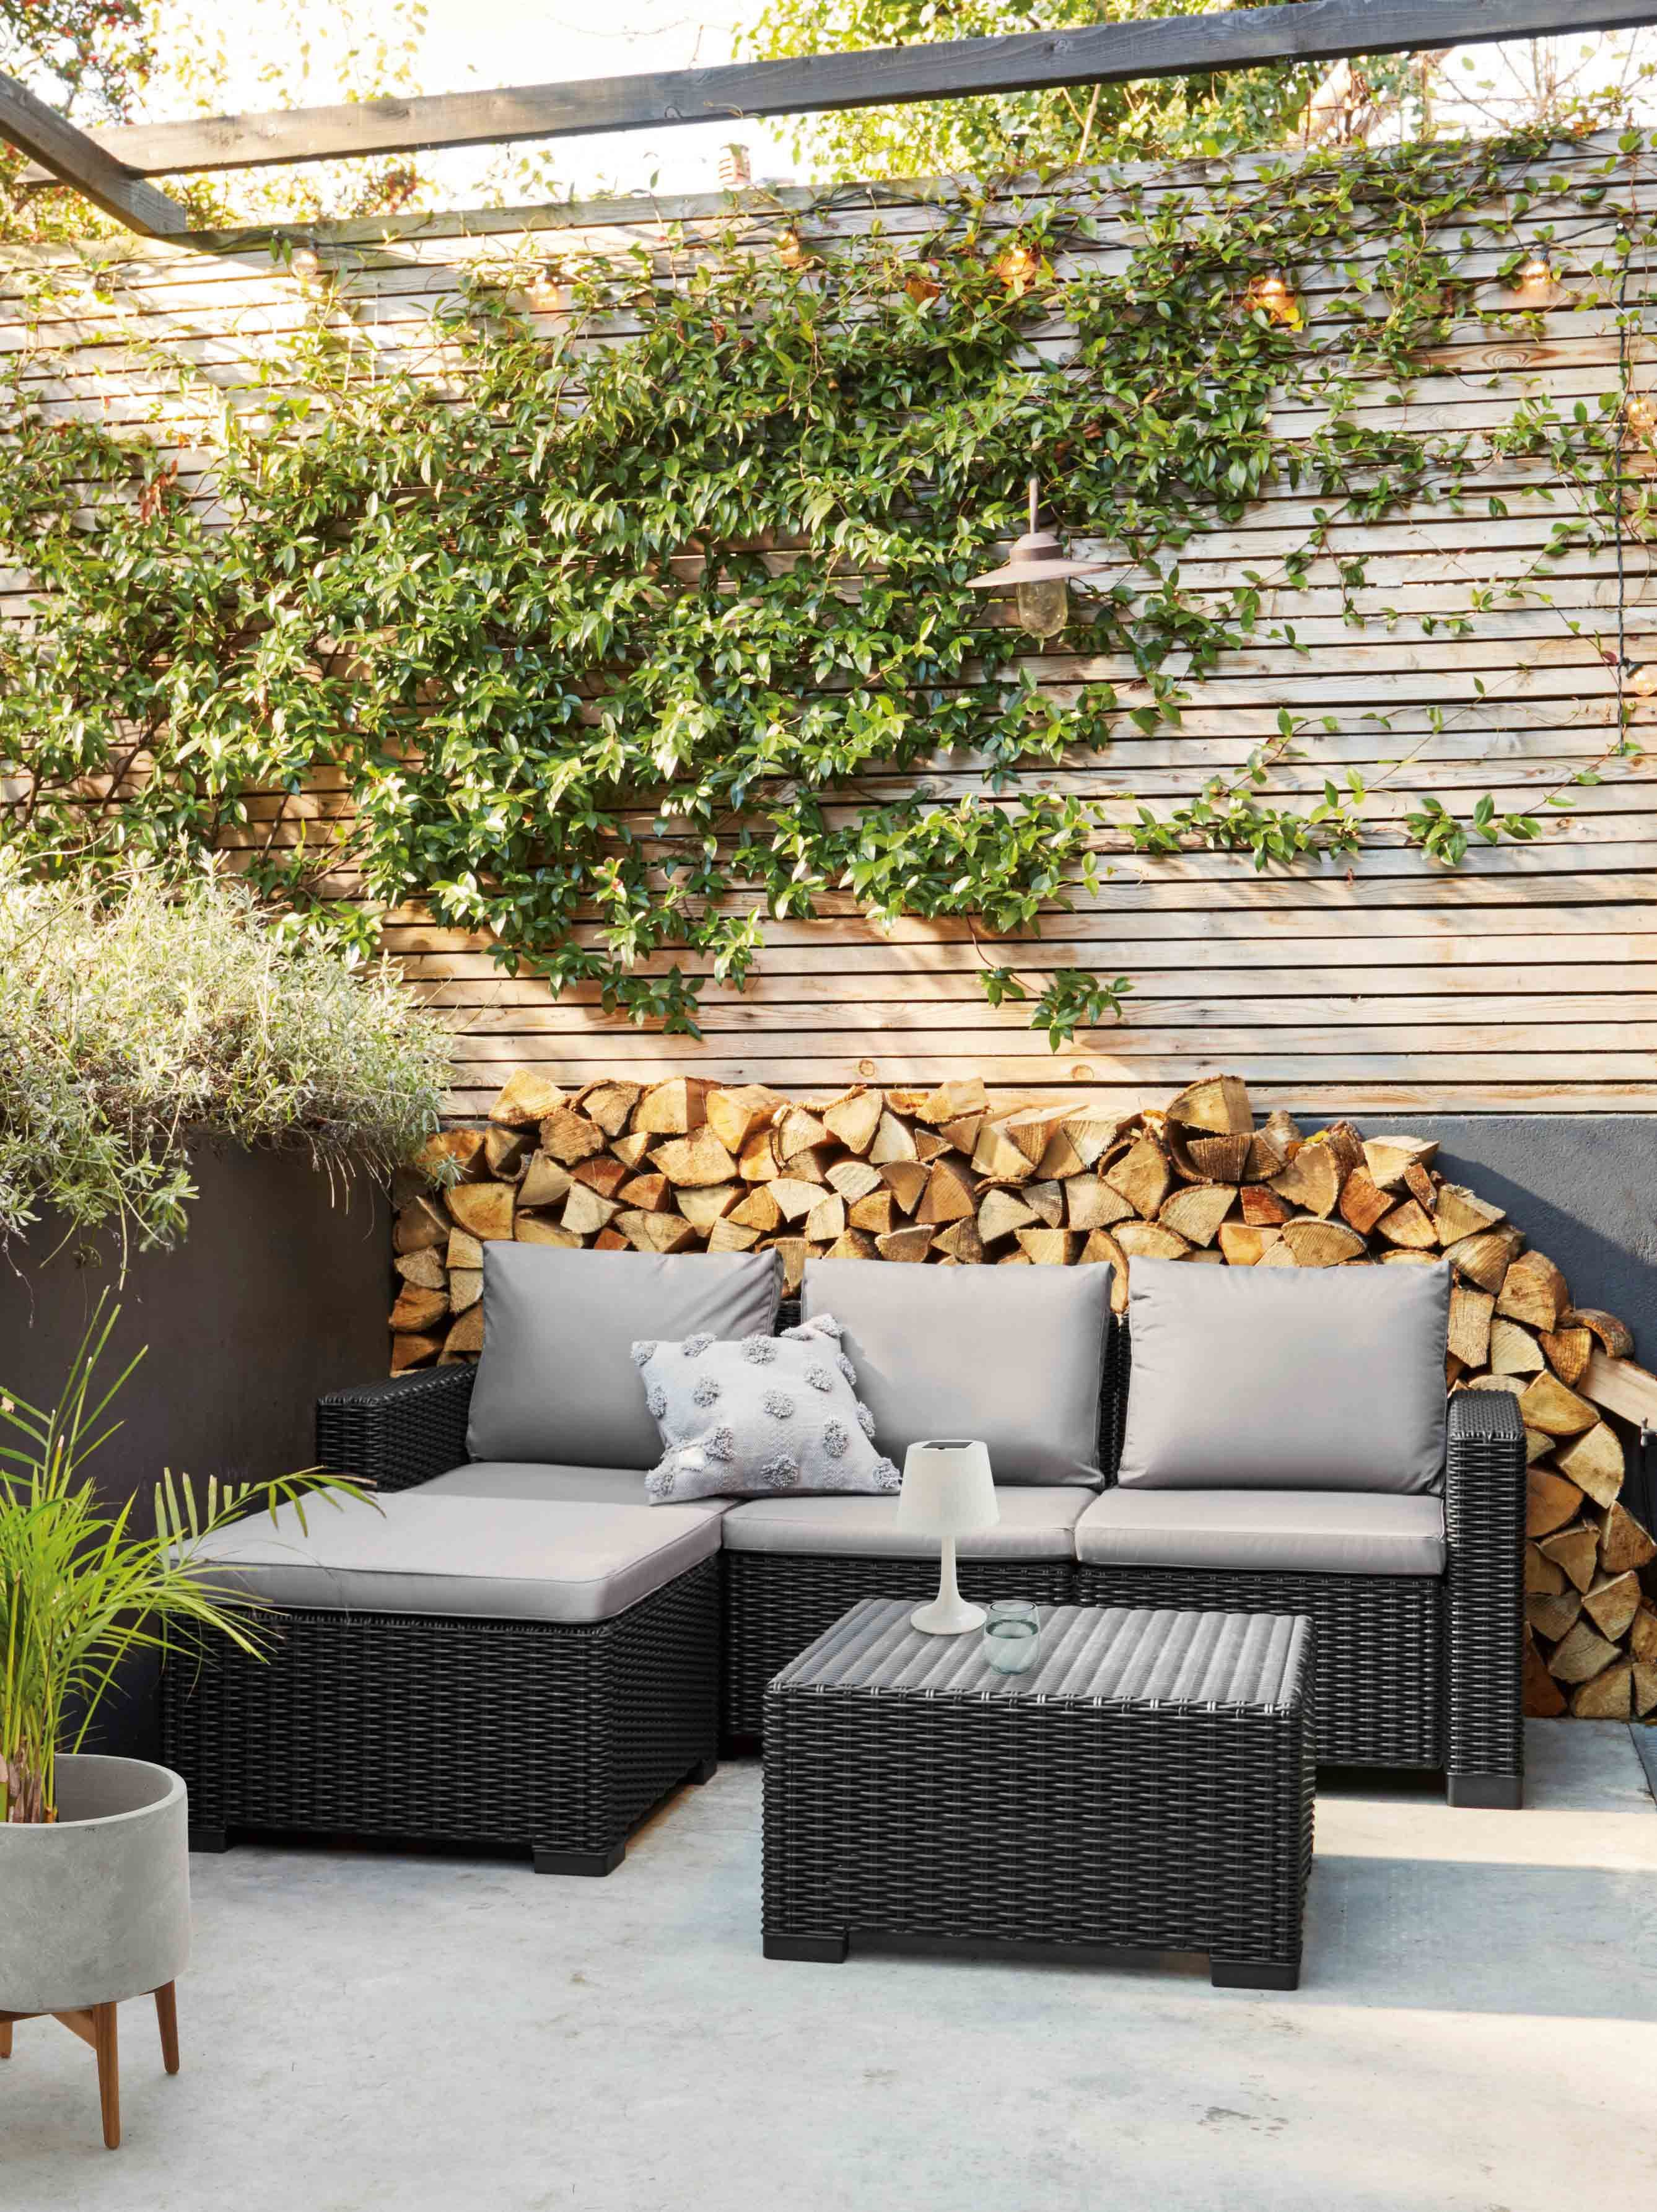 8 things you need to consider before creating an outdoor garden room